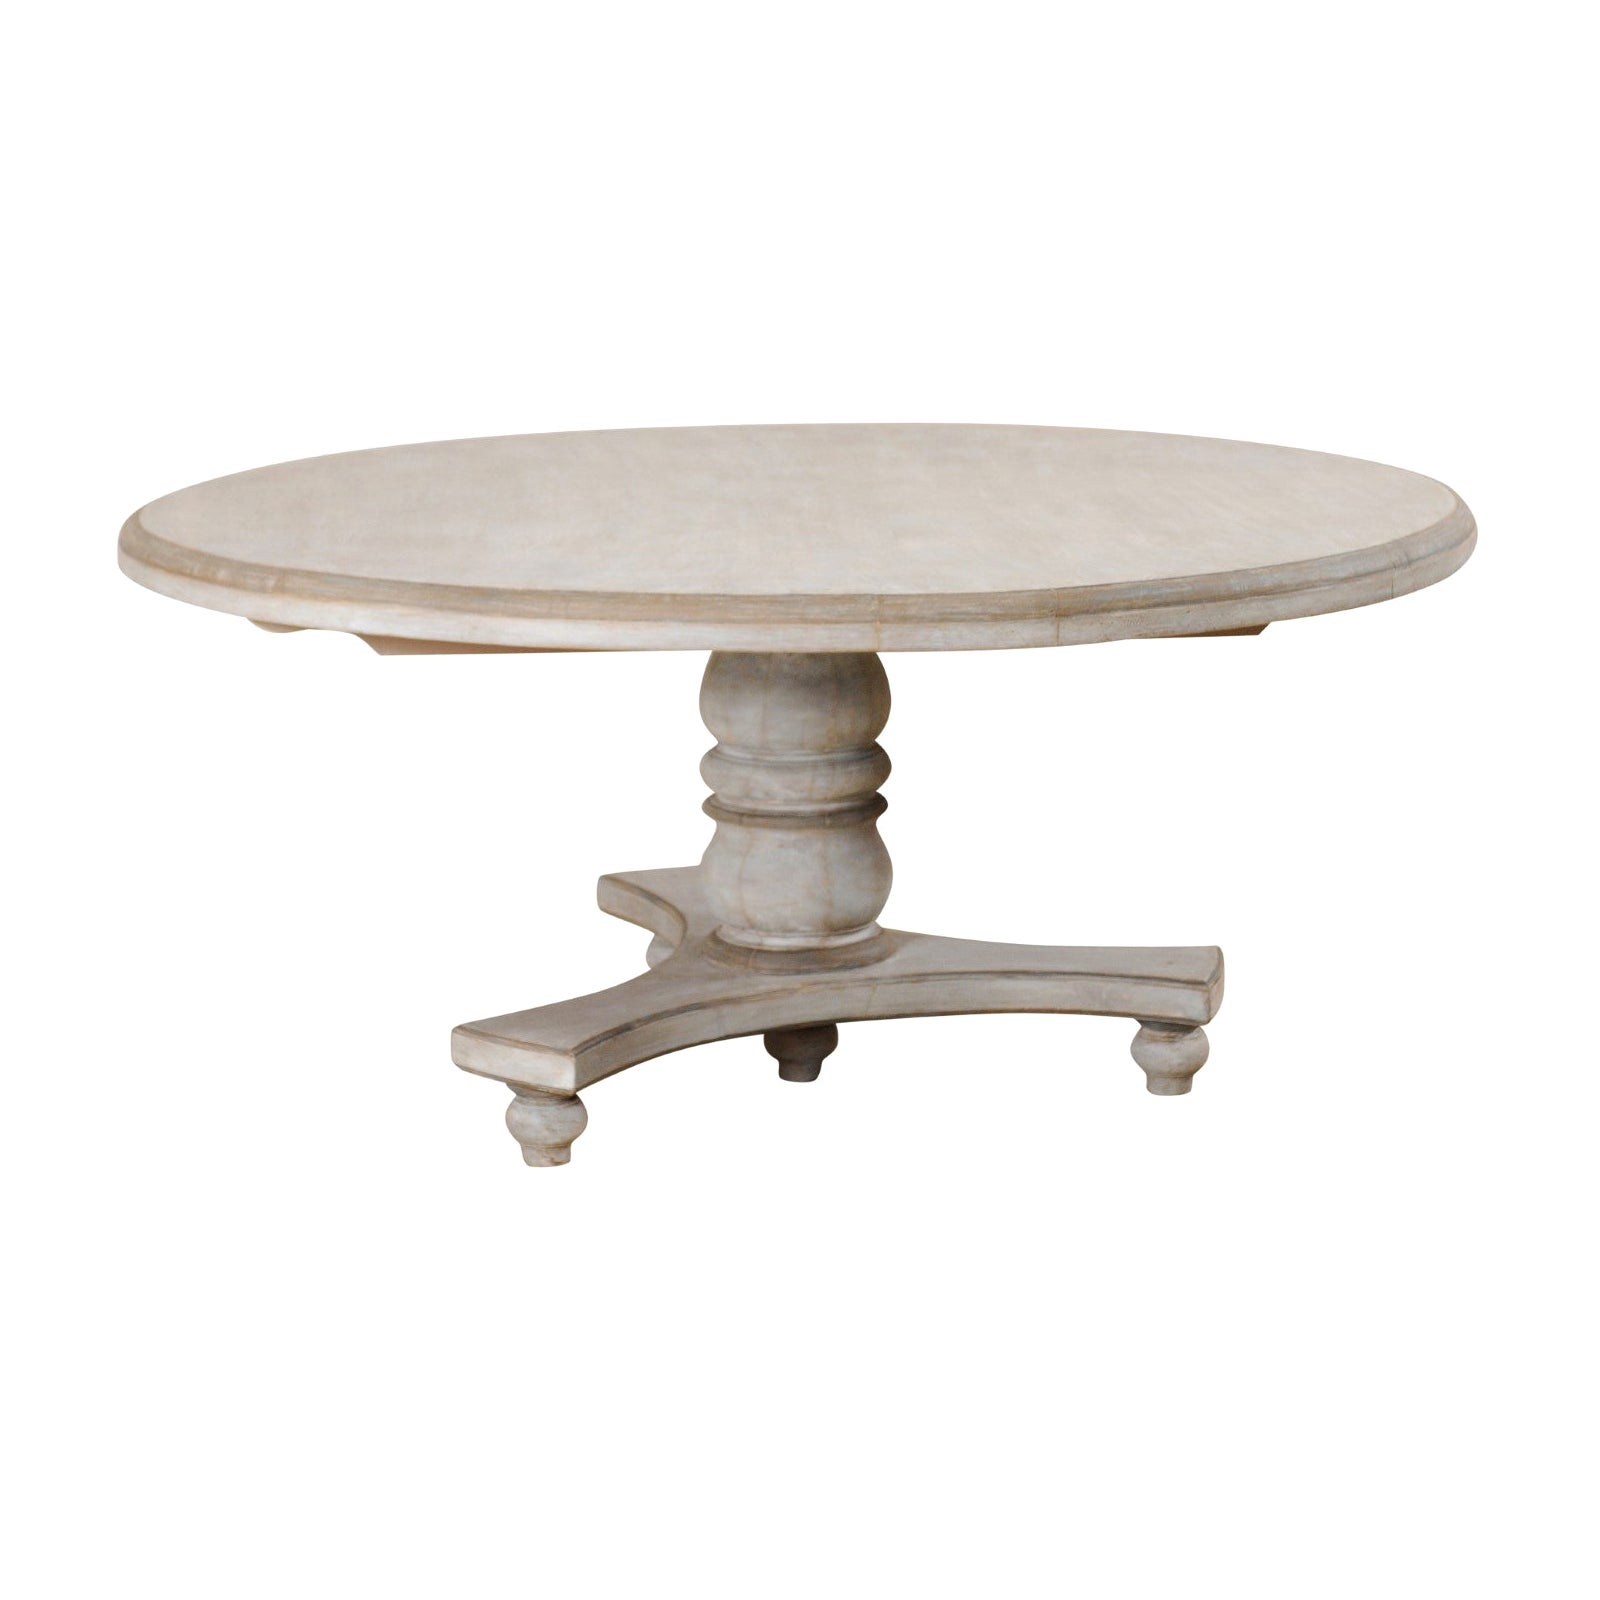 Round Shaped Top Painted Hardwood Pedestal Table